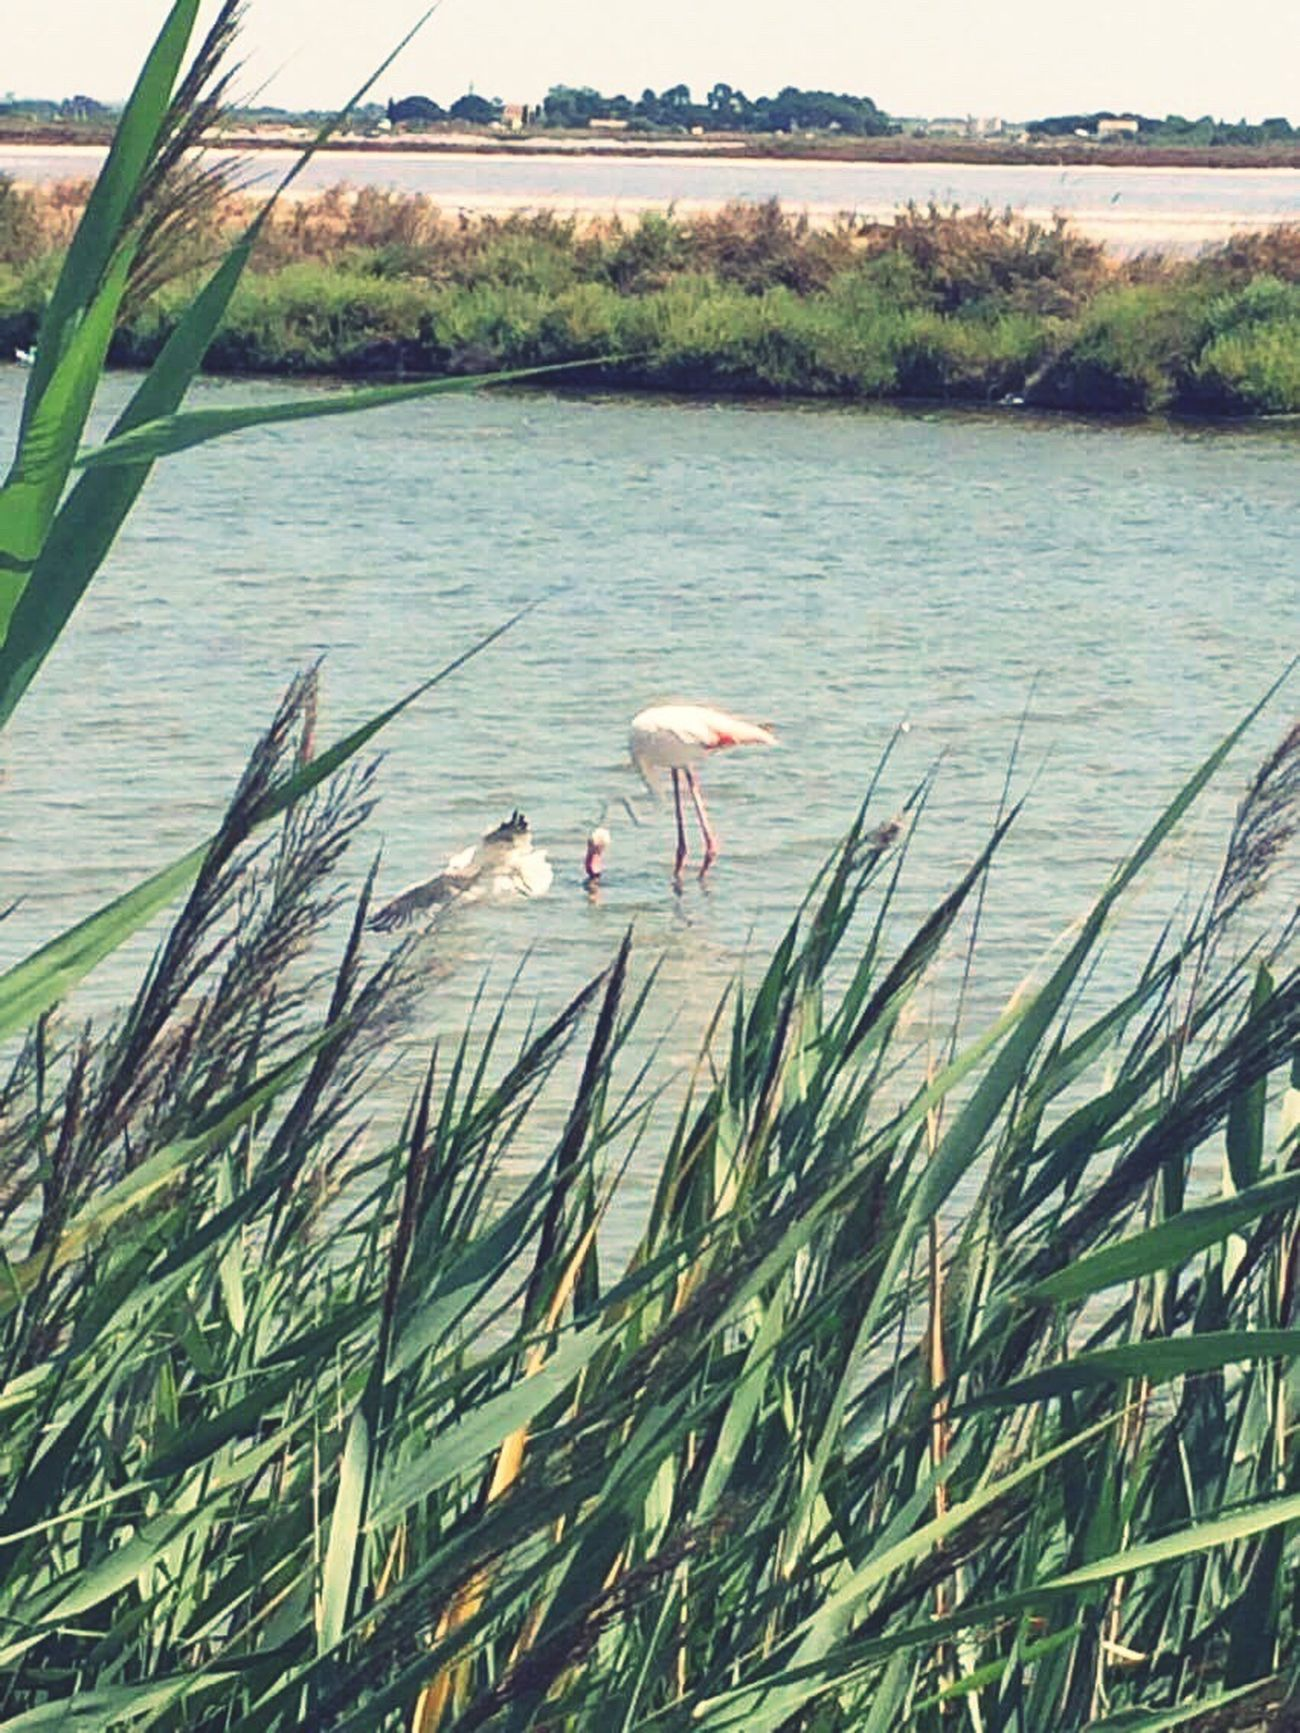 3 jours en Camargue premier vrai départ vers l'inconnu en Jumpy. Camargue Flamant Rose Animals In The Wild Roadtrip